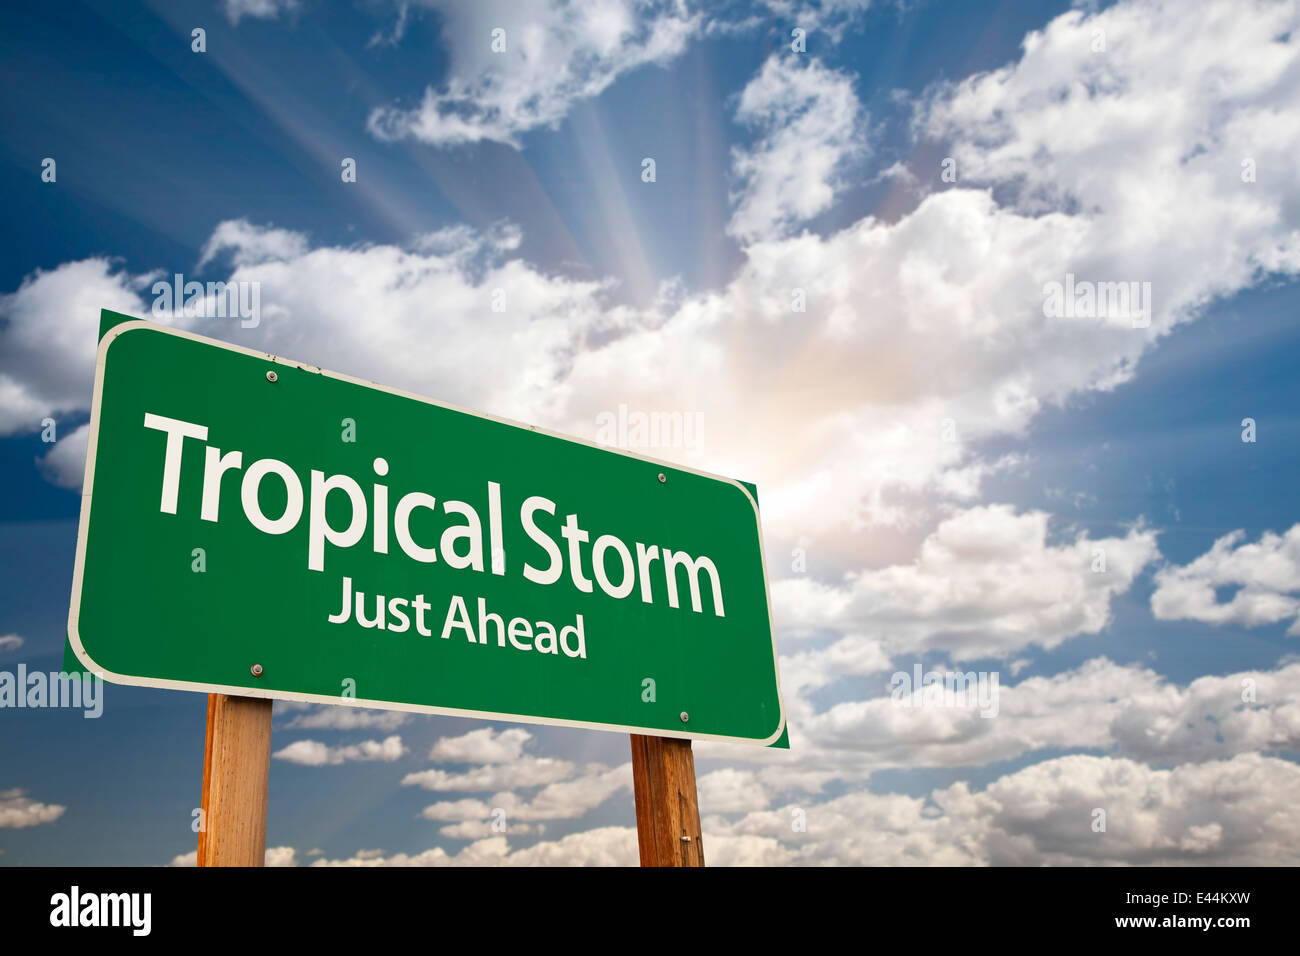 Tropical Storm Green Road Sign with Dramatic Clouds and Sky. - Stock Image